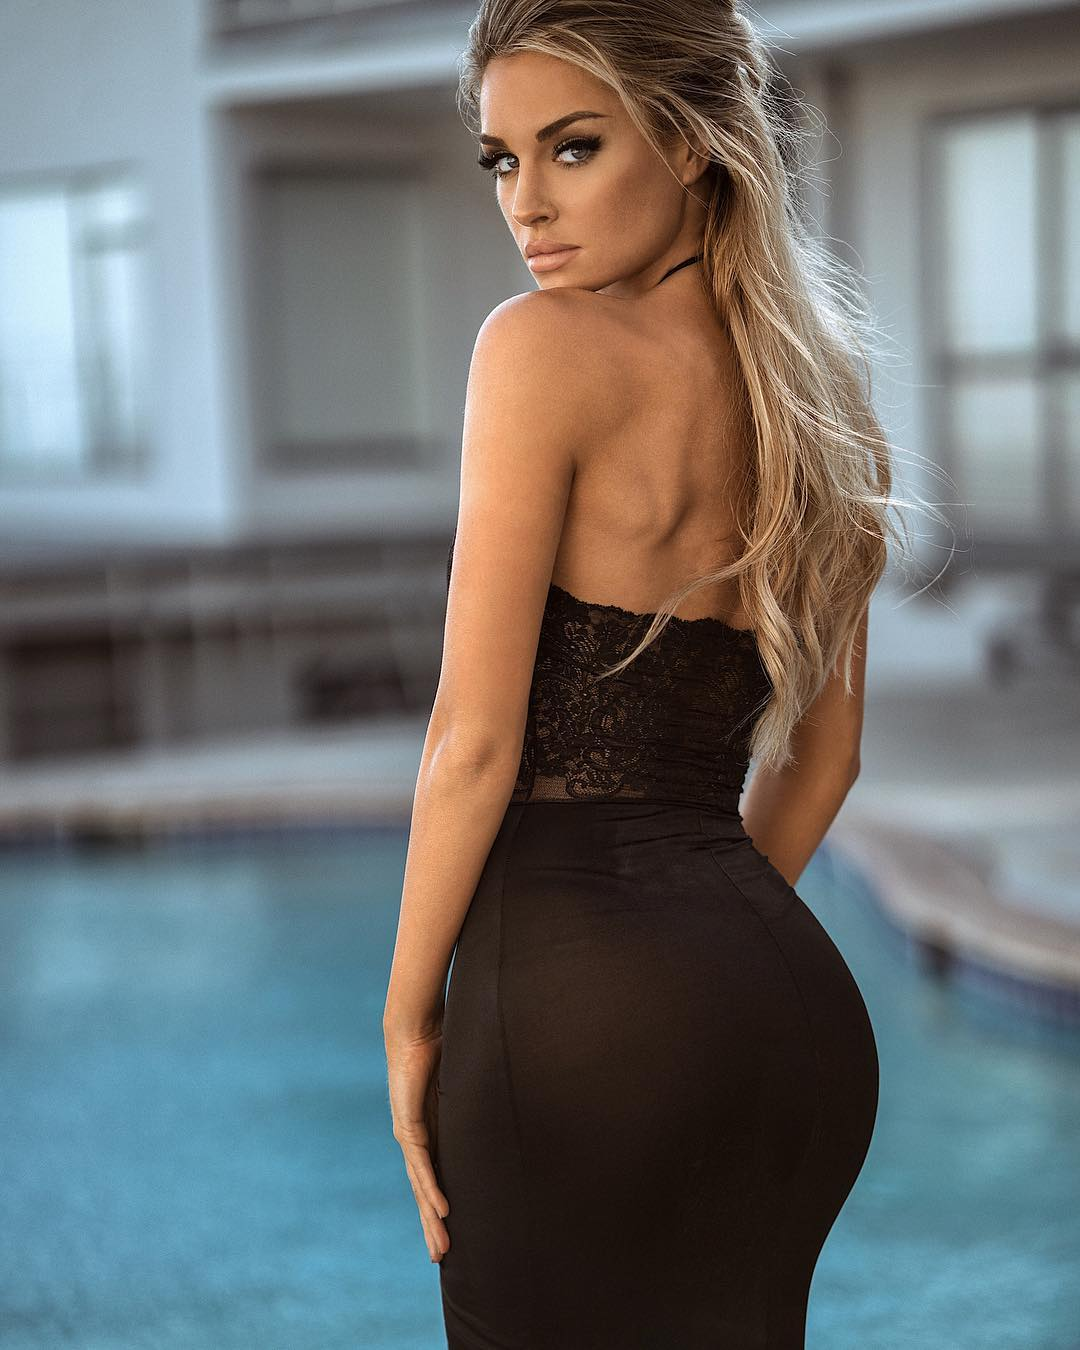 Anna-Katharina-Wallpapers-Insta-Fit-Bio-3